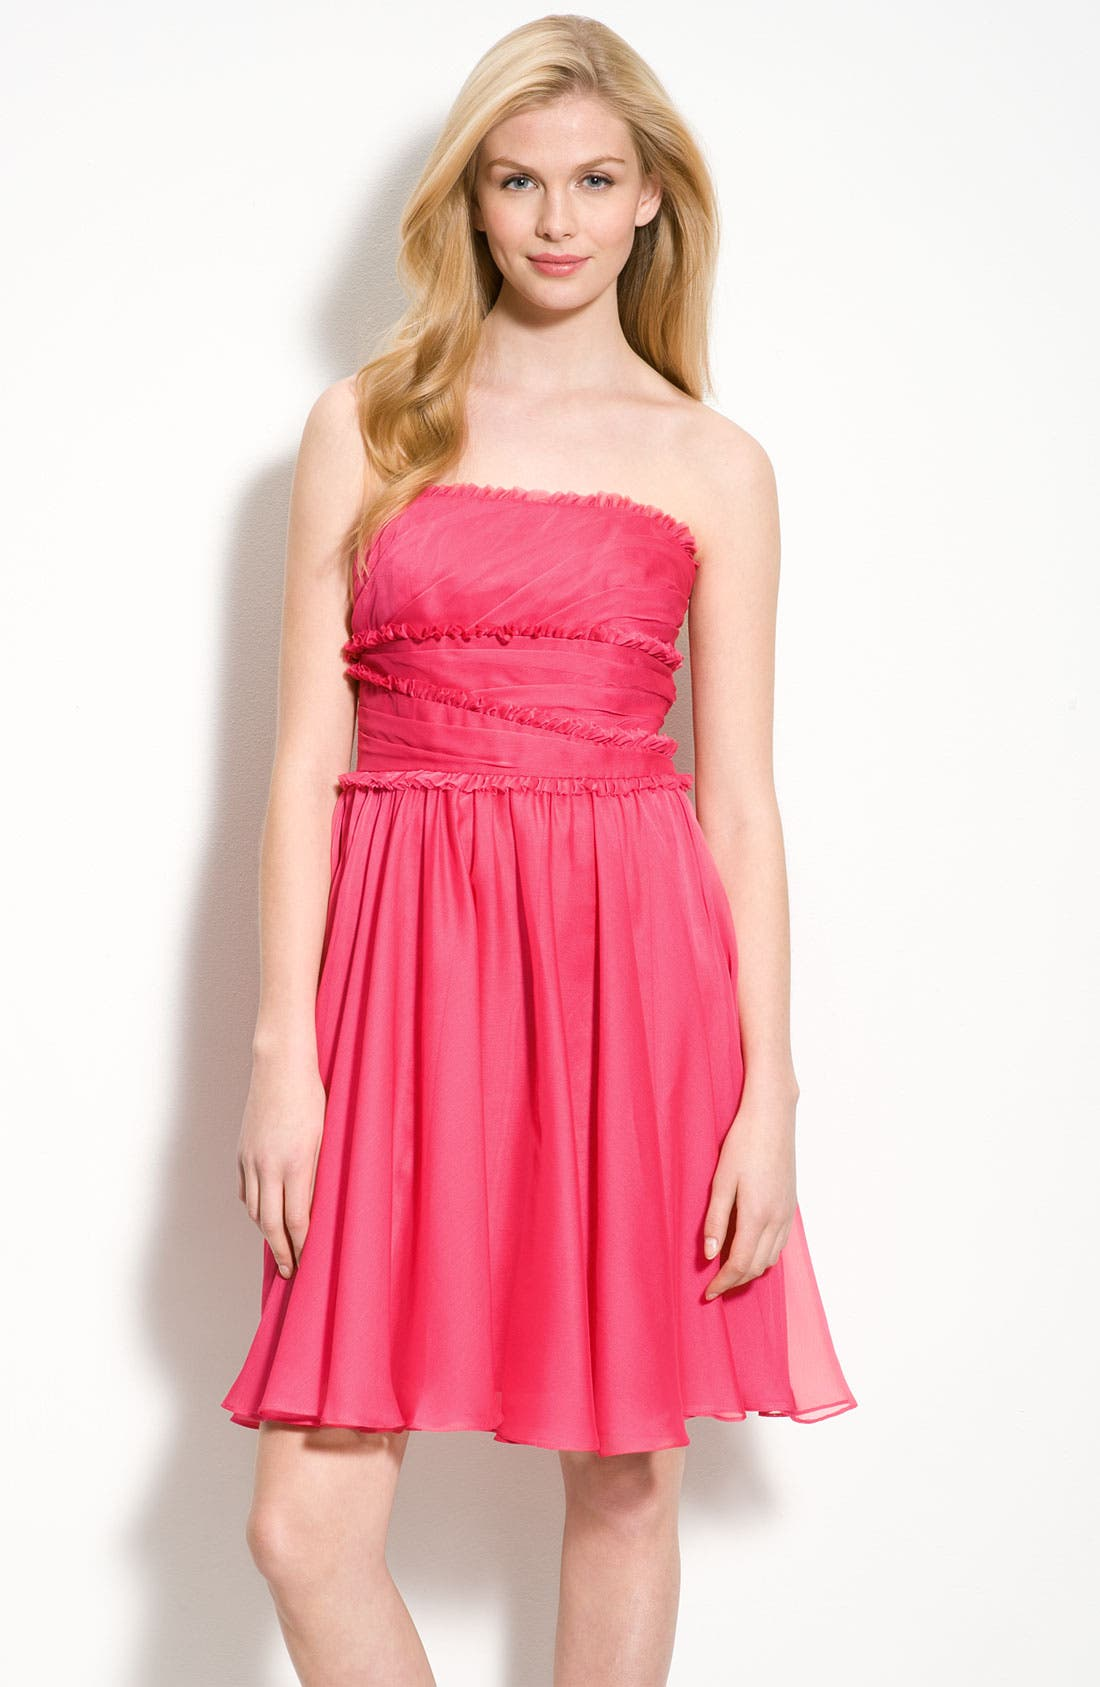 Main Image - ML Monique Lhuillier Bridesmaids Ruffle Chiffon Dress (Nordstrom Exclusive)